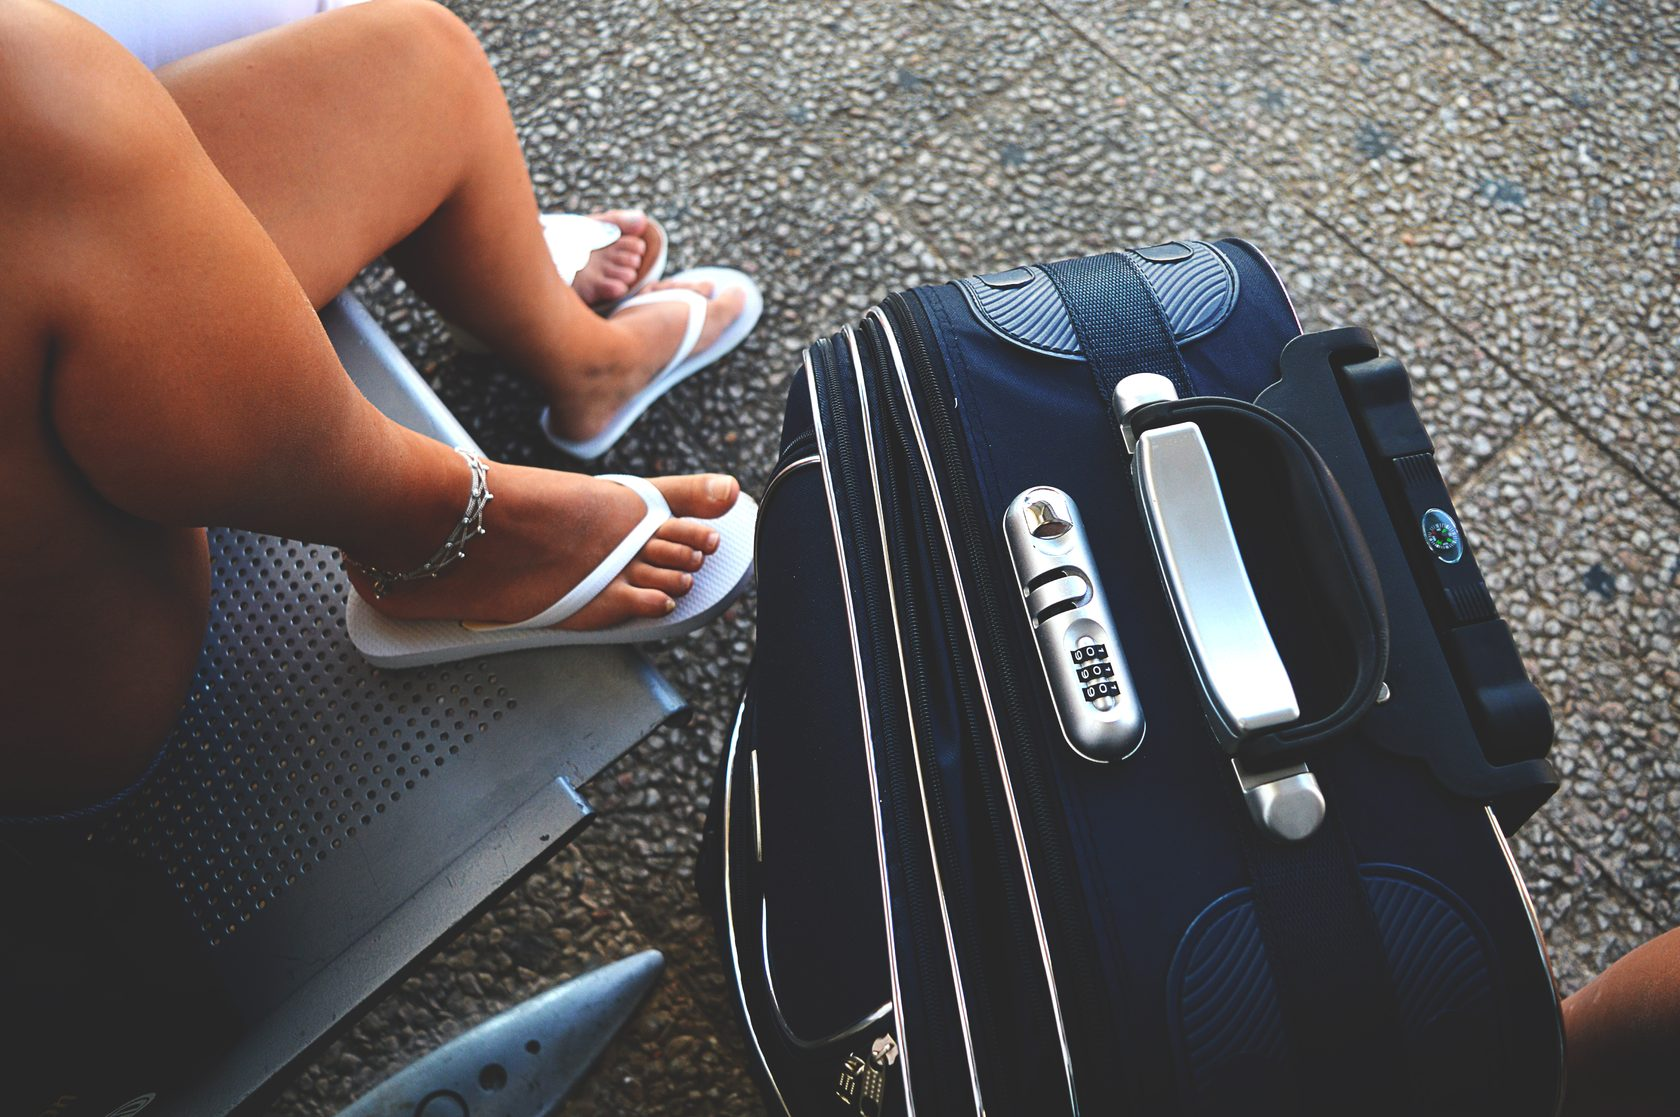 Small, But Must-Have Items to Carry While Travelling